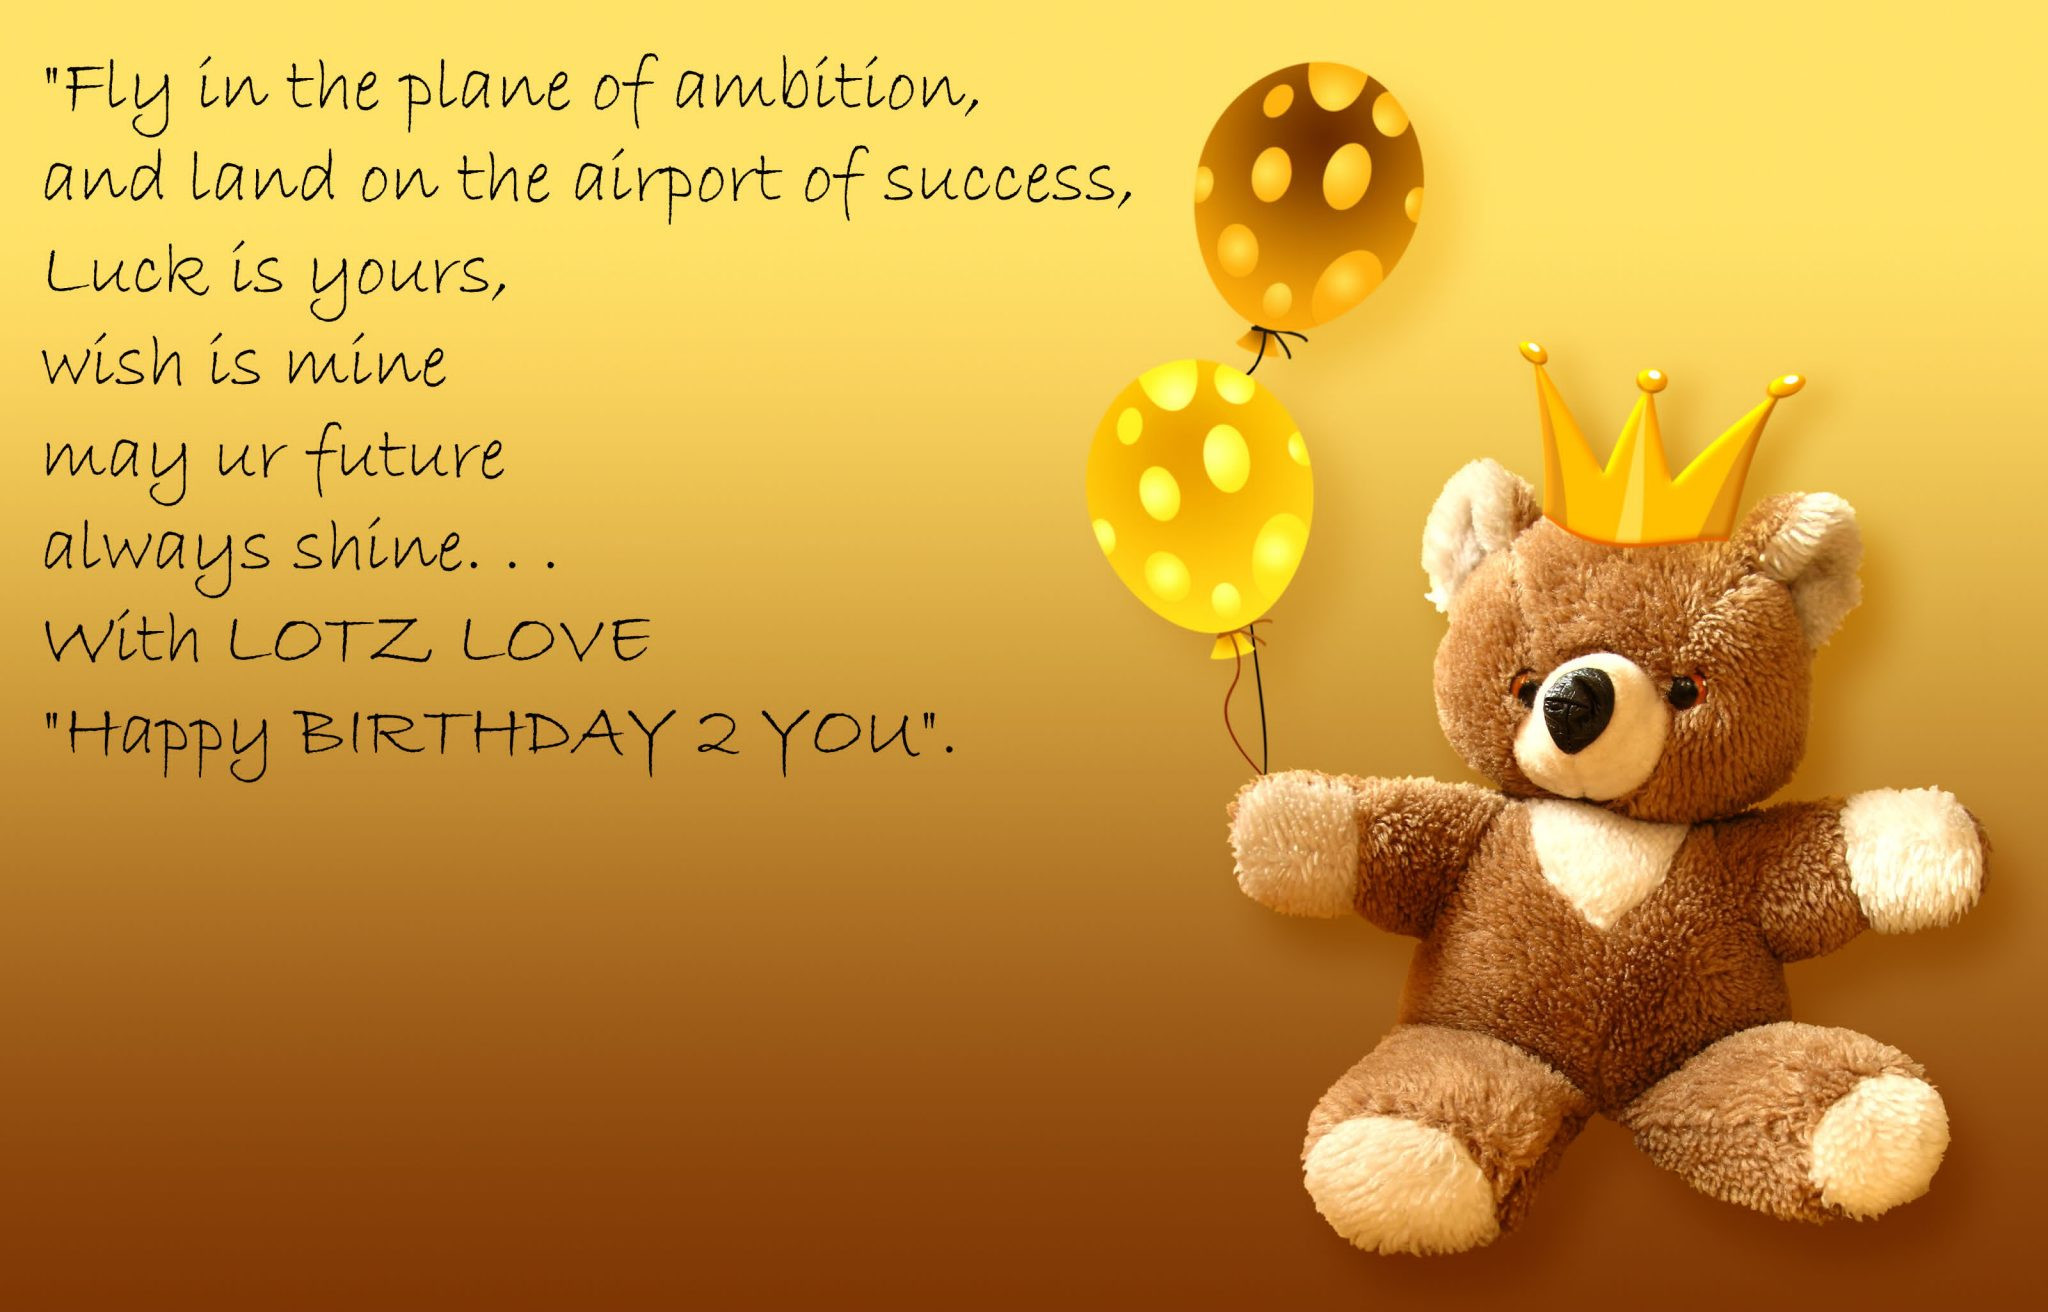 Best ideas about Short And Sweet Birthday Wishes . Save or Pin 30 Best Short and Sweet Birthday Wishes for Your Loved es Now.